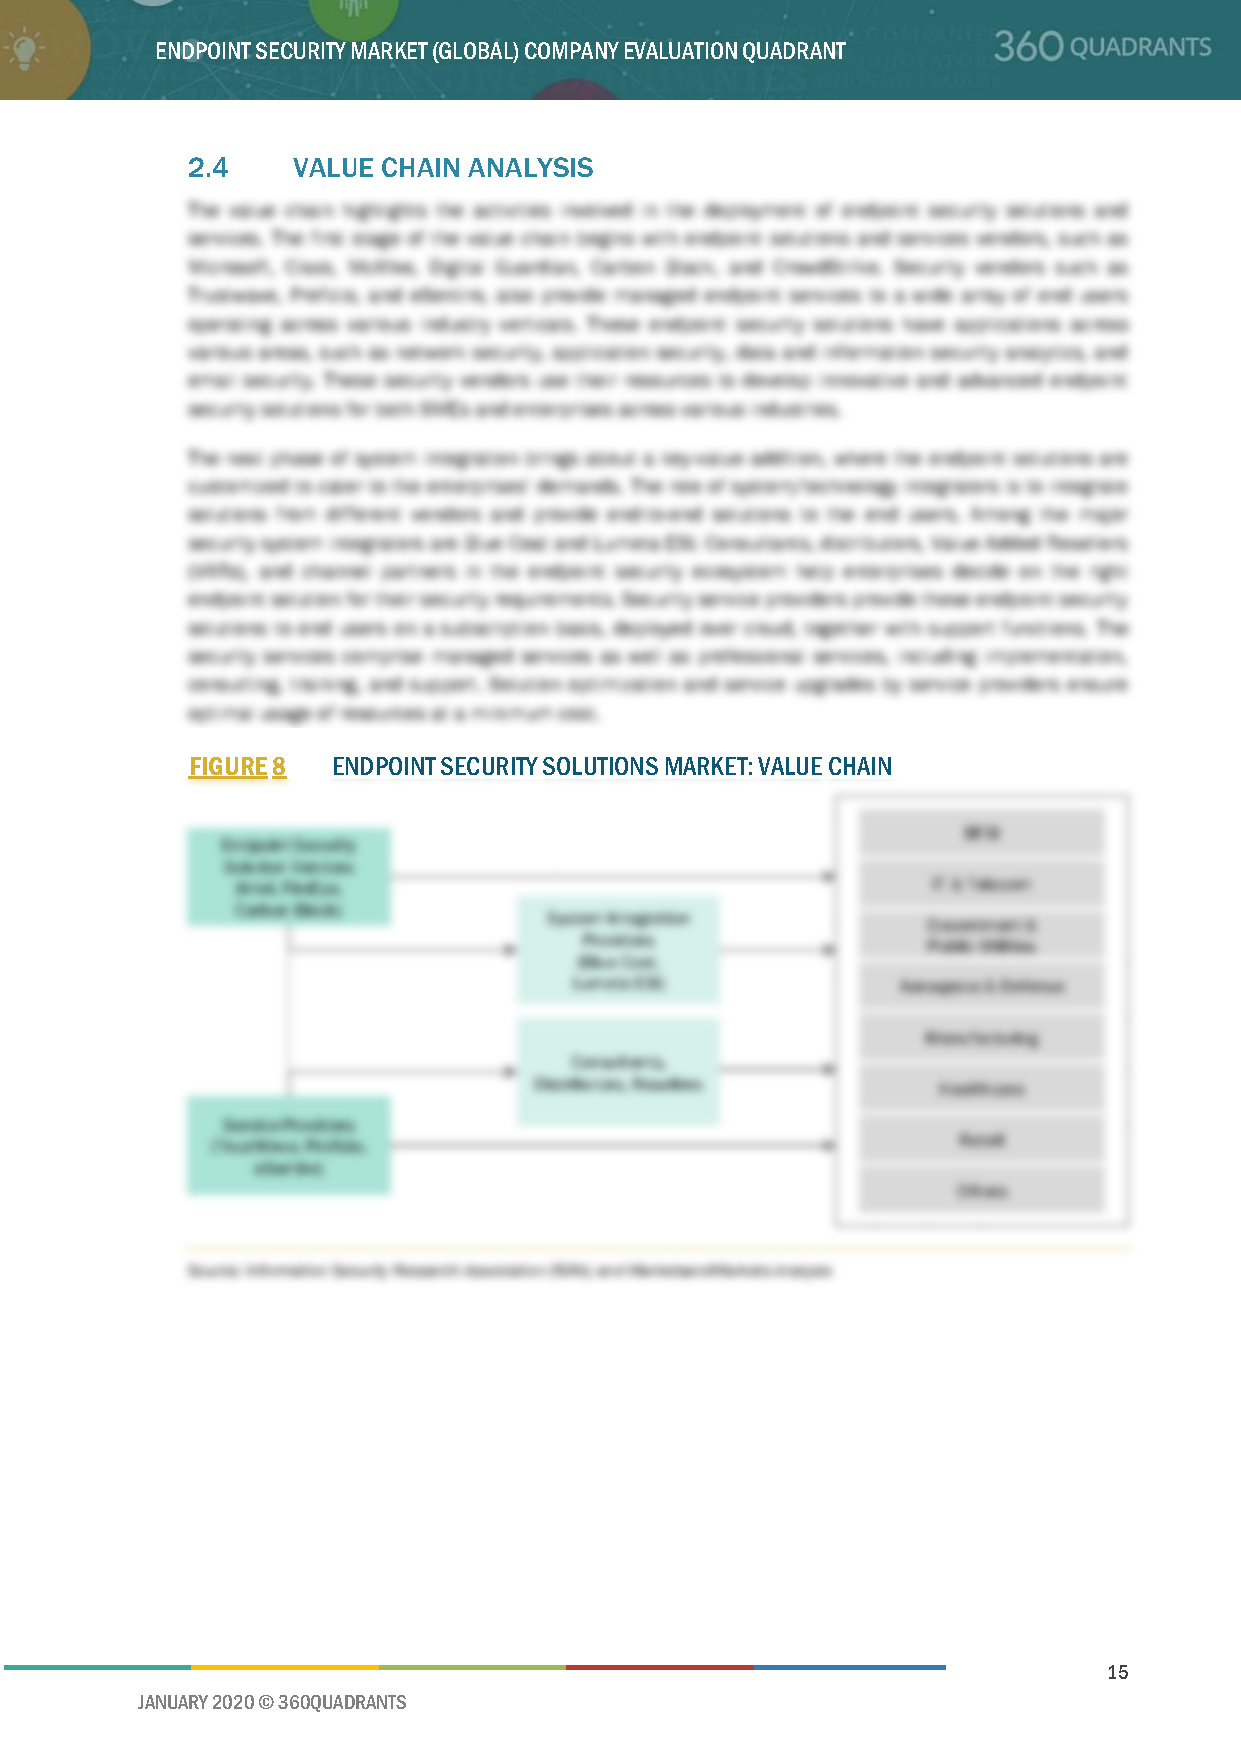 Endpoint Security Solutions Value Chain